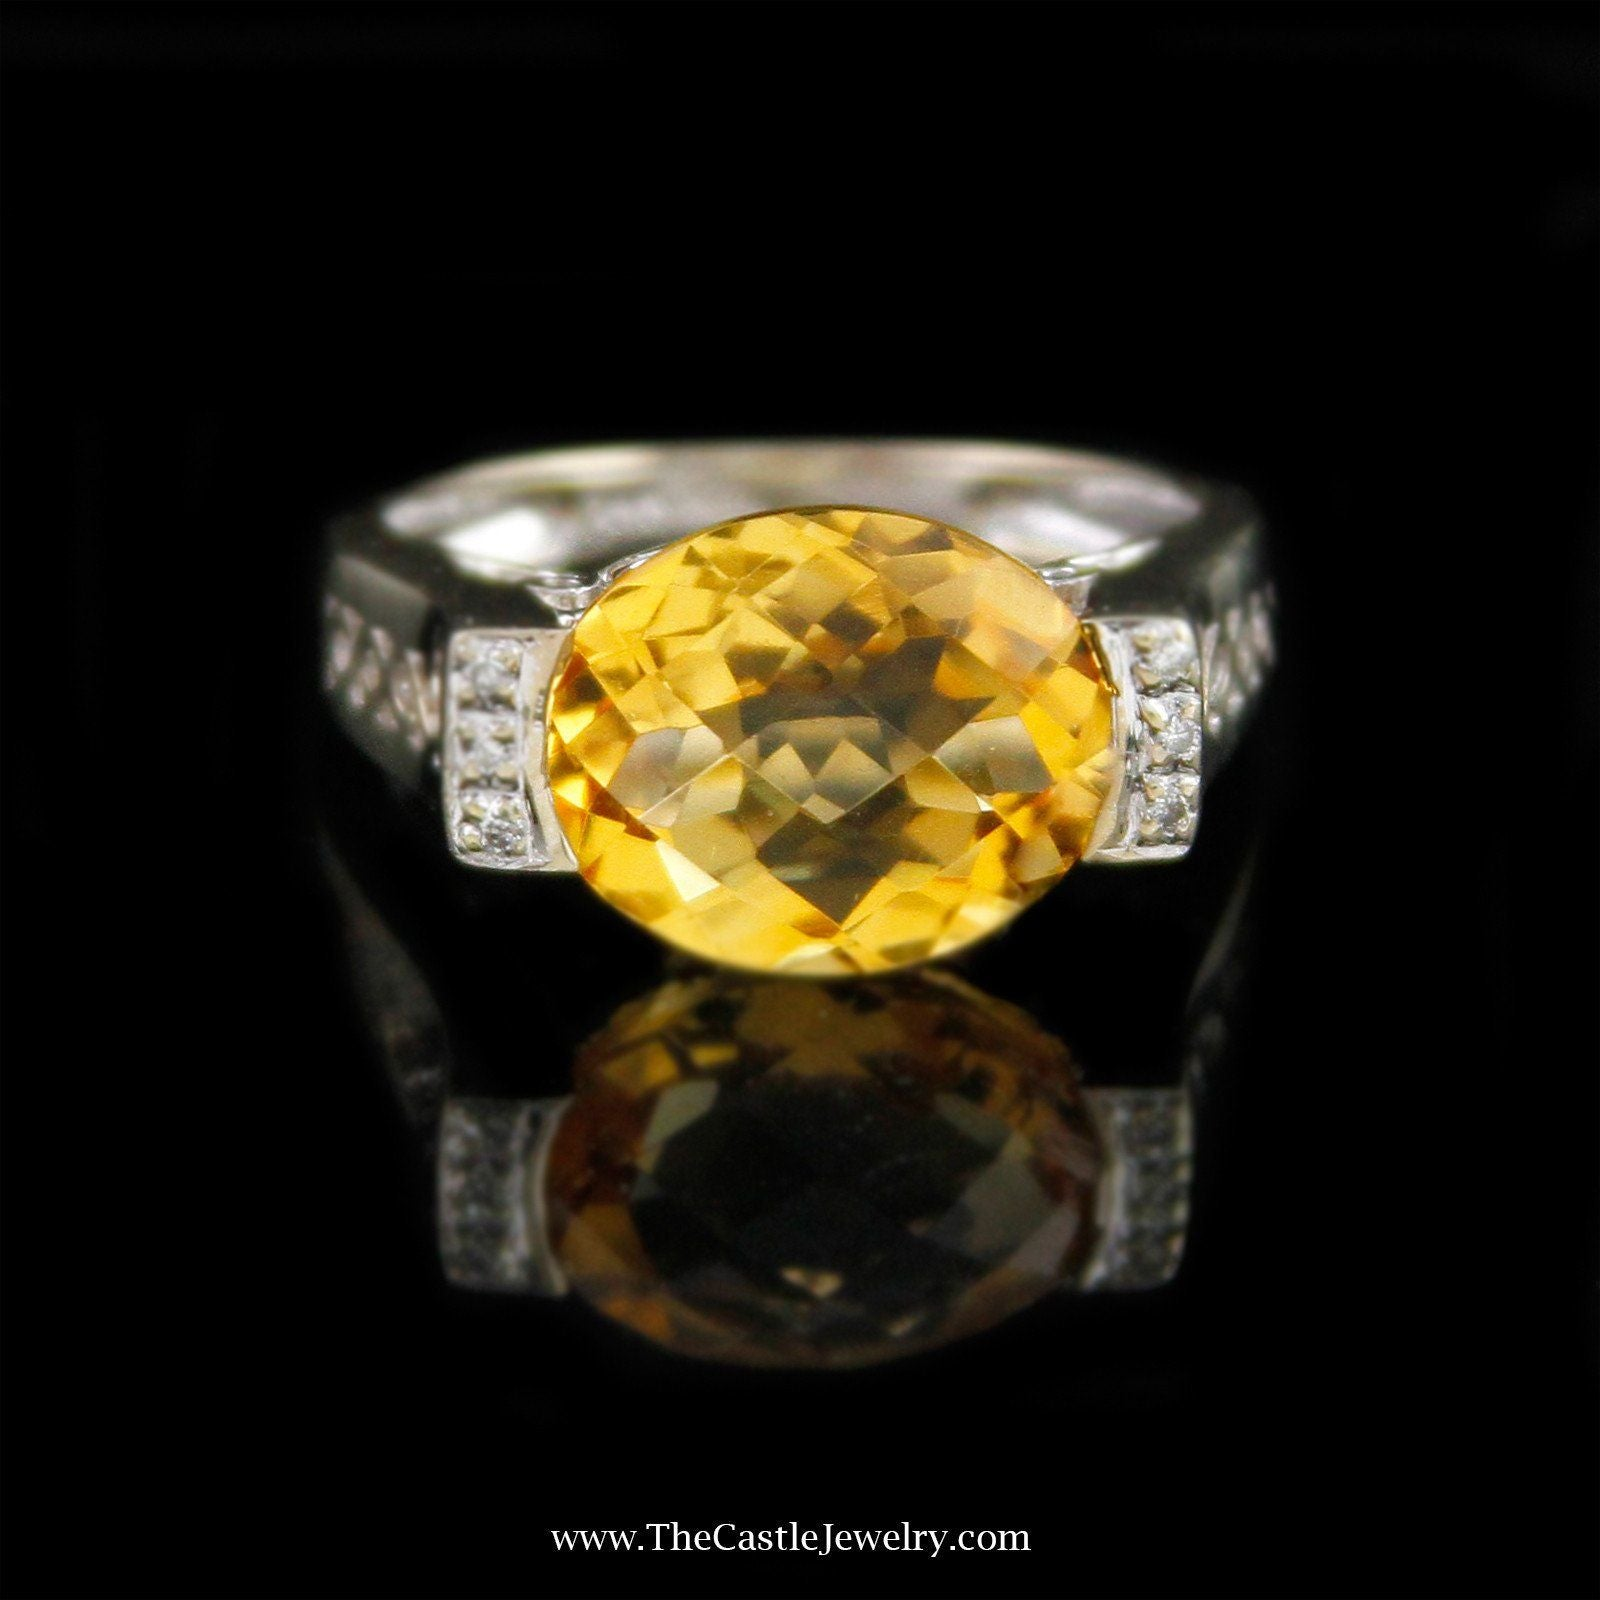 Oval Fantasy Cut Citrine Ring with Round Diamond Sides in 14K White Gold